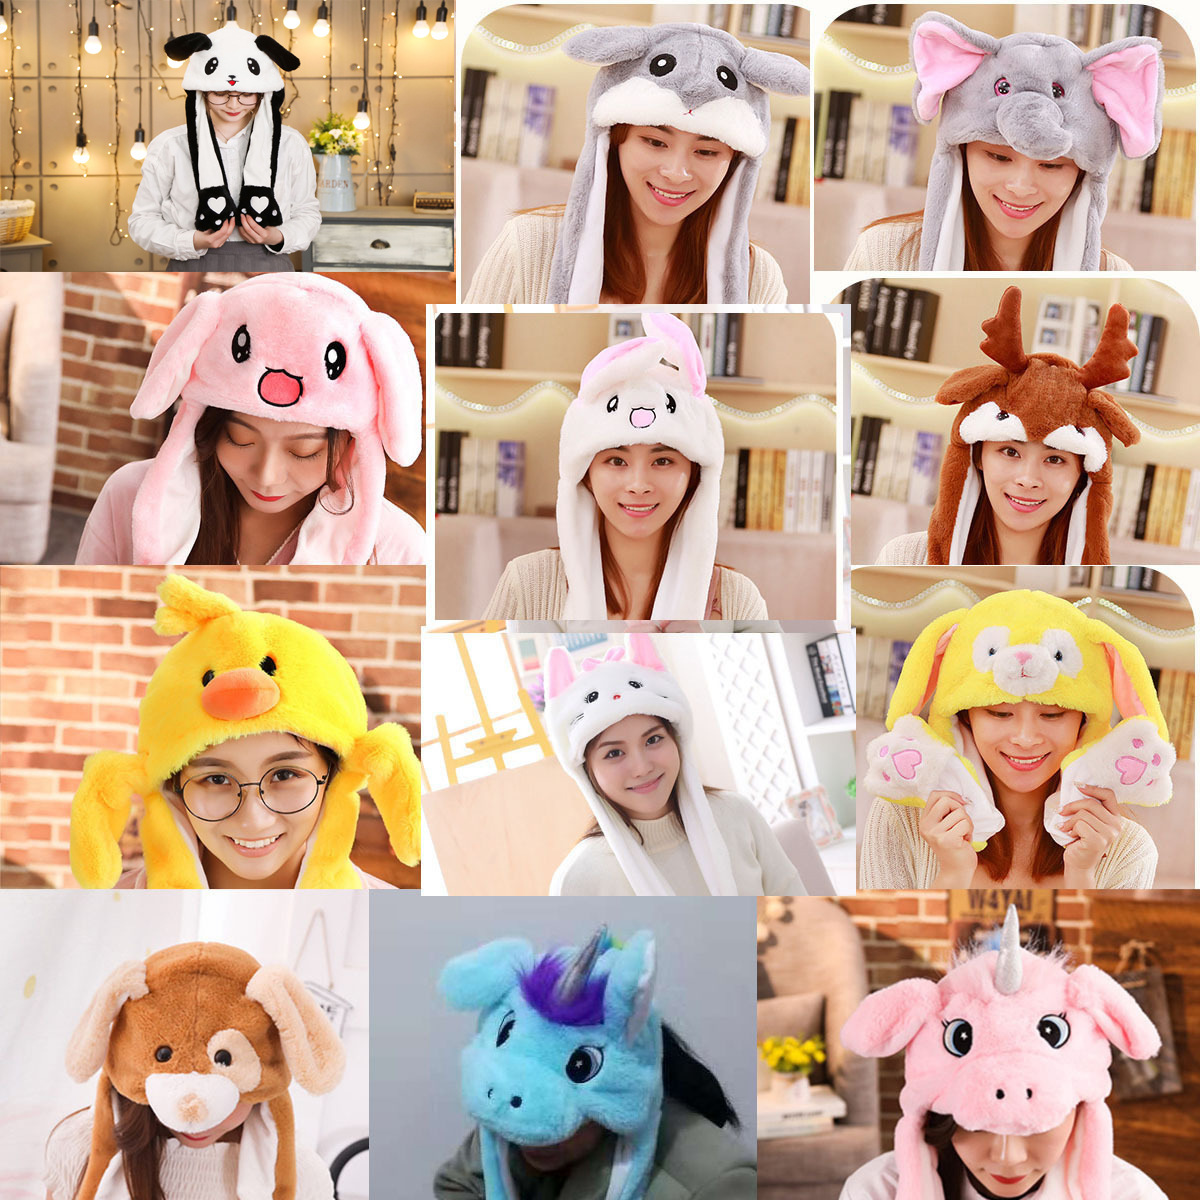 Moving Hat Rabbit Ear Plush Airbag Cap Stitch Pikachu Lighted Hat Kid Gift Mickey Minnie Mouse Doraemon Doll Toy Cosplay Hat